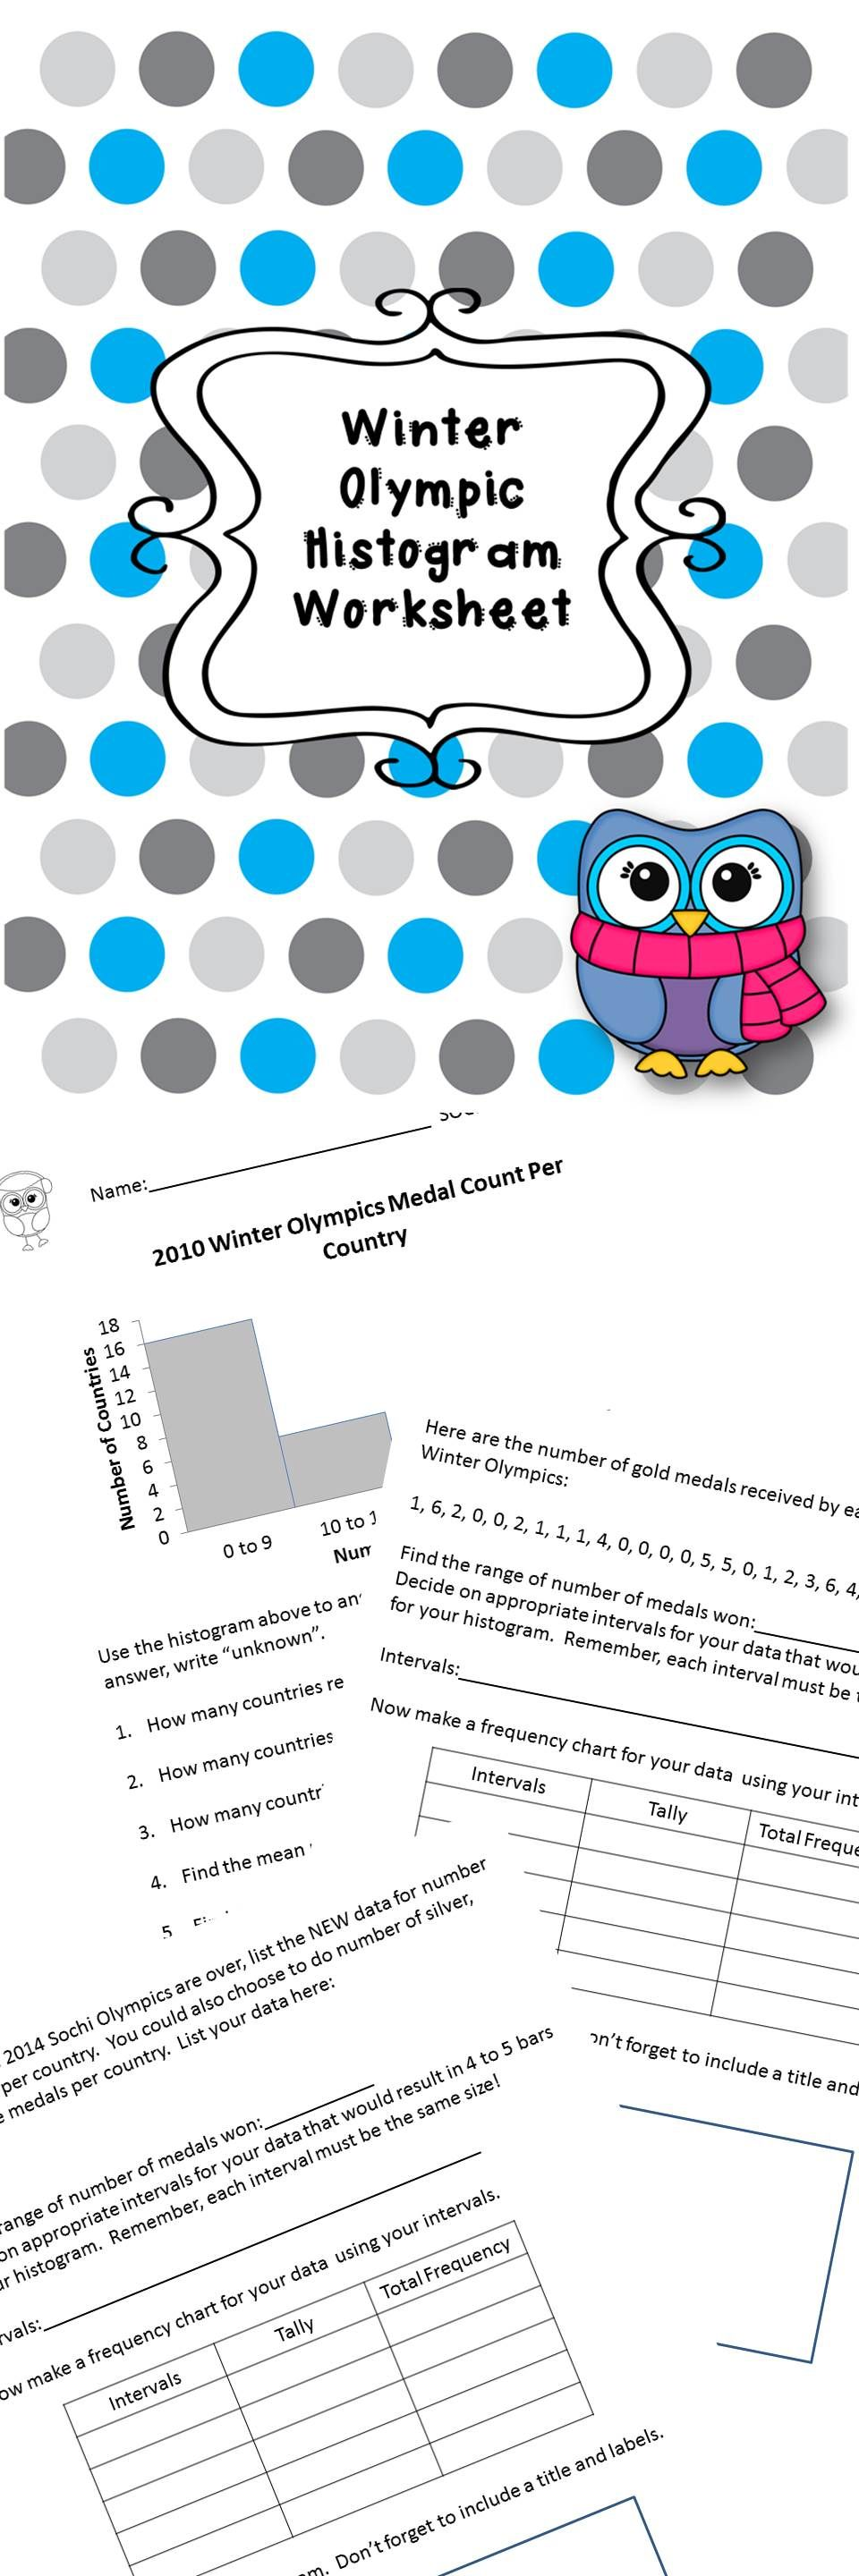 Worksheets Histogram Worksheet winter olympic histogram worksheet olympics worksheets worksheet